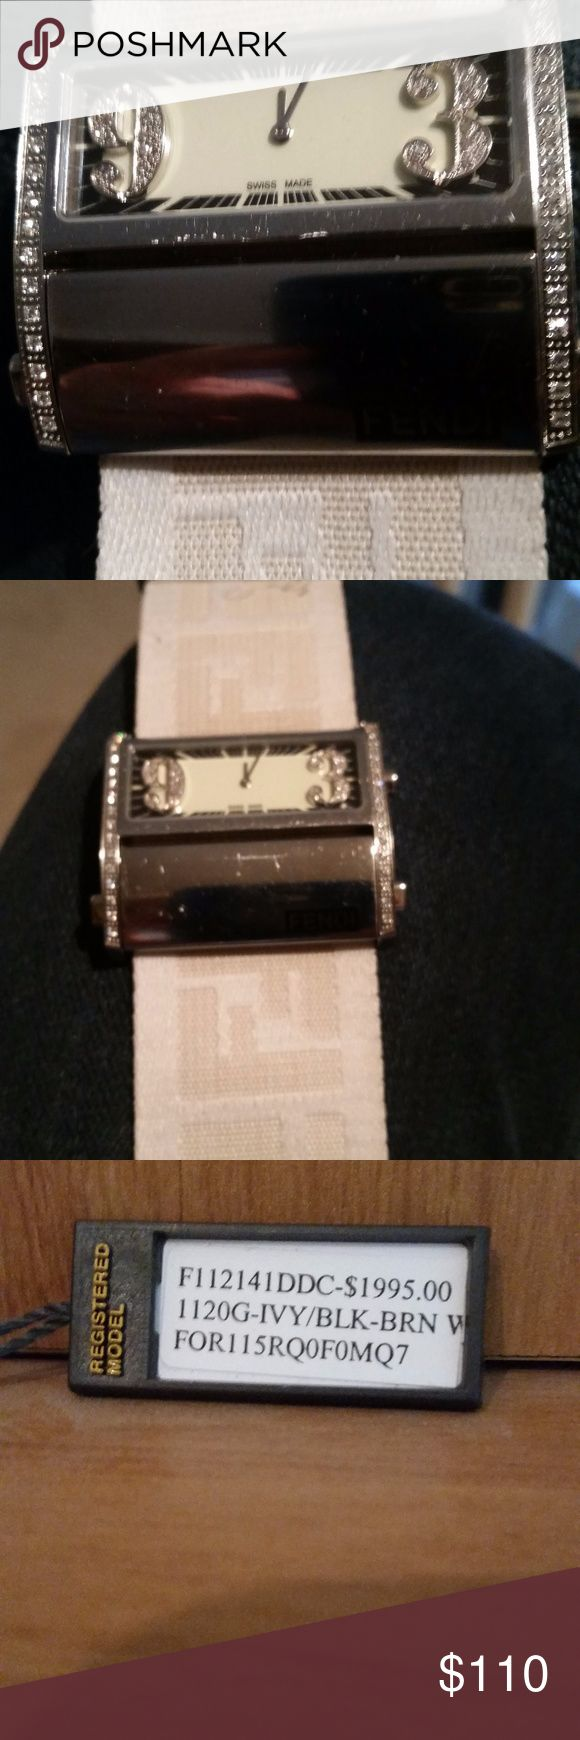 Fendi ladies quartz watch with genuine diamonds Beautiful Fendi ladies dress watch with genuine diamonds on side of case and on numerals 9 and 3. Original box, price tag ($1995) and manual. Watch is battery -powered but does not work. Fendi Jewelry